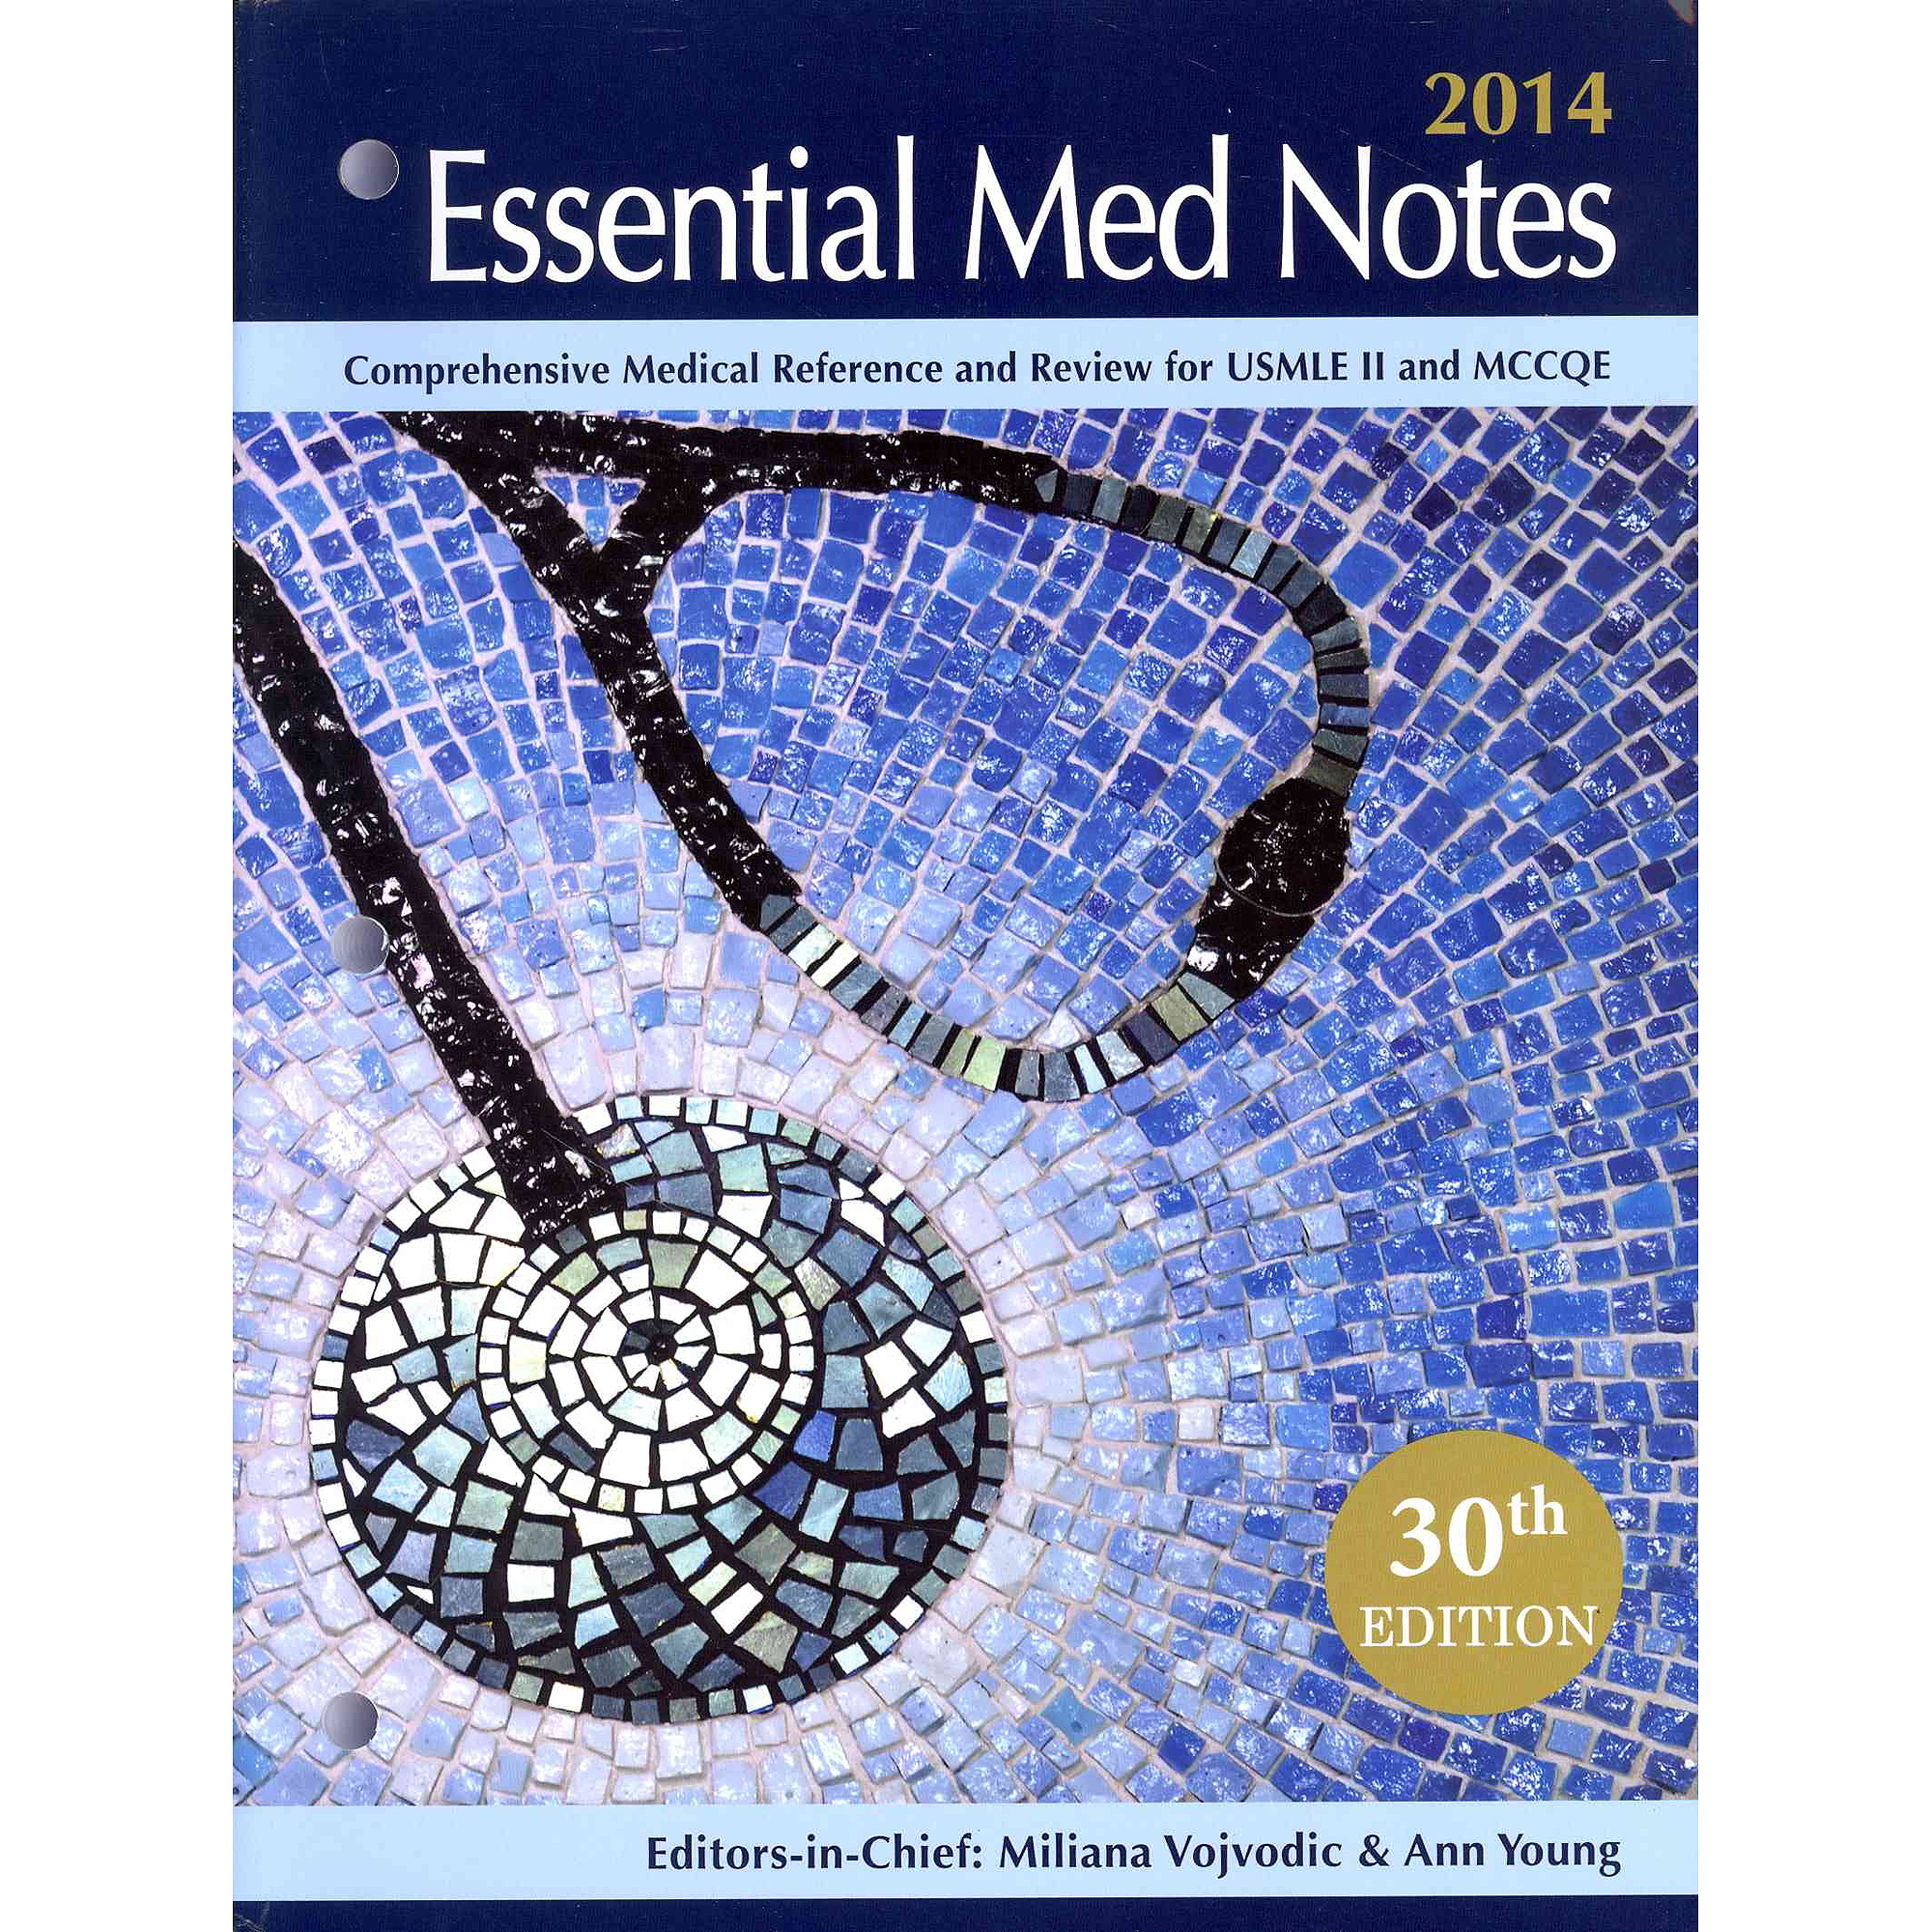 Essential Med Notes 2014: Comprehensive Medical Reference and Review for the United States Medical Licensing Exam Step 2 and the Medical Council of Canada Qualifying Exam